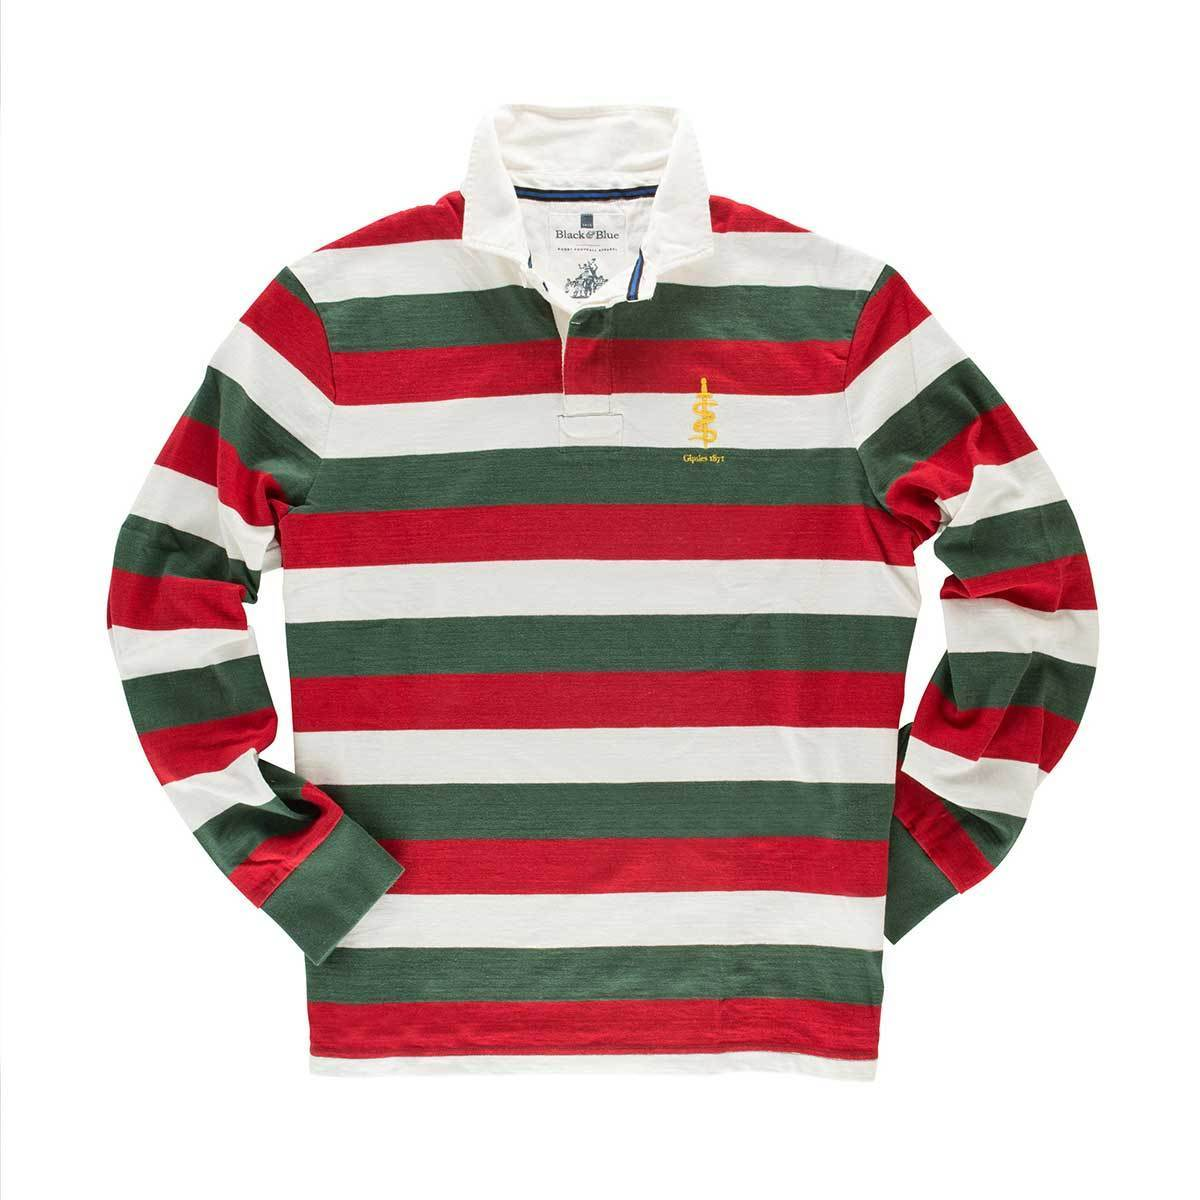 Gipsies 1871 Rugby Shirt